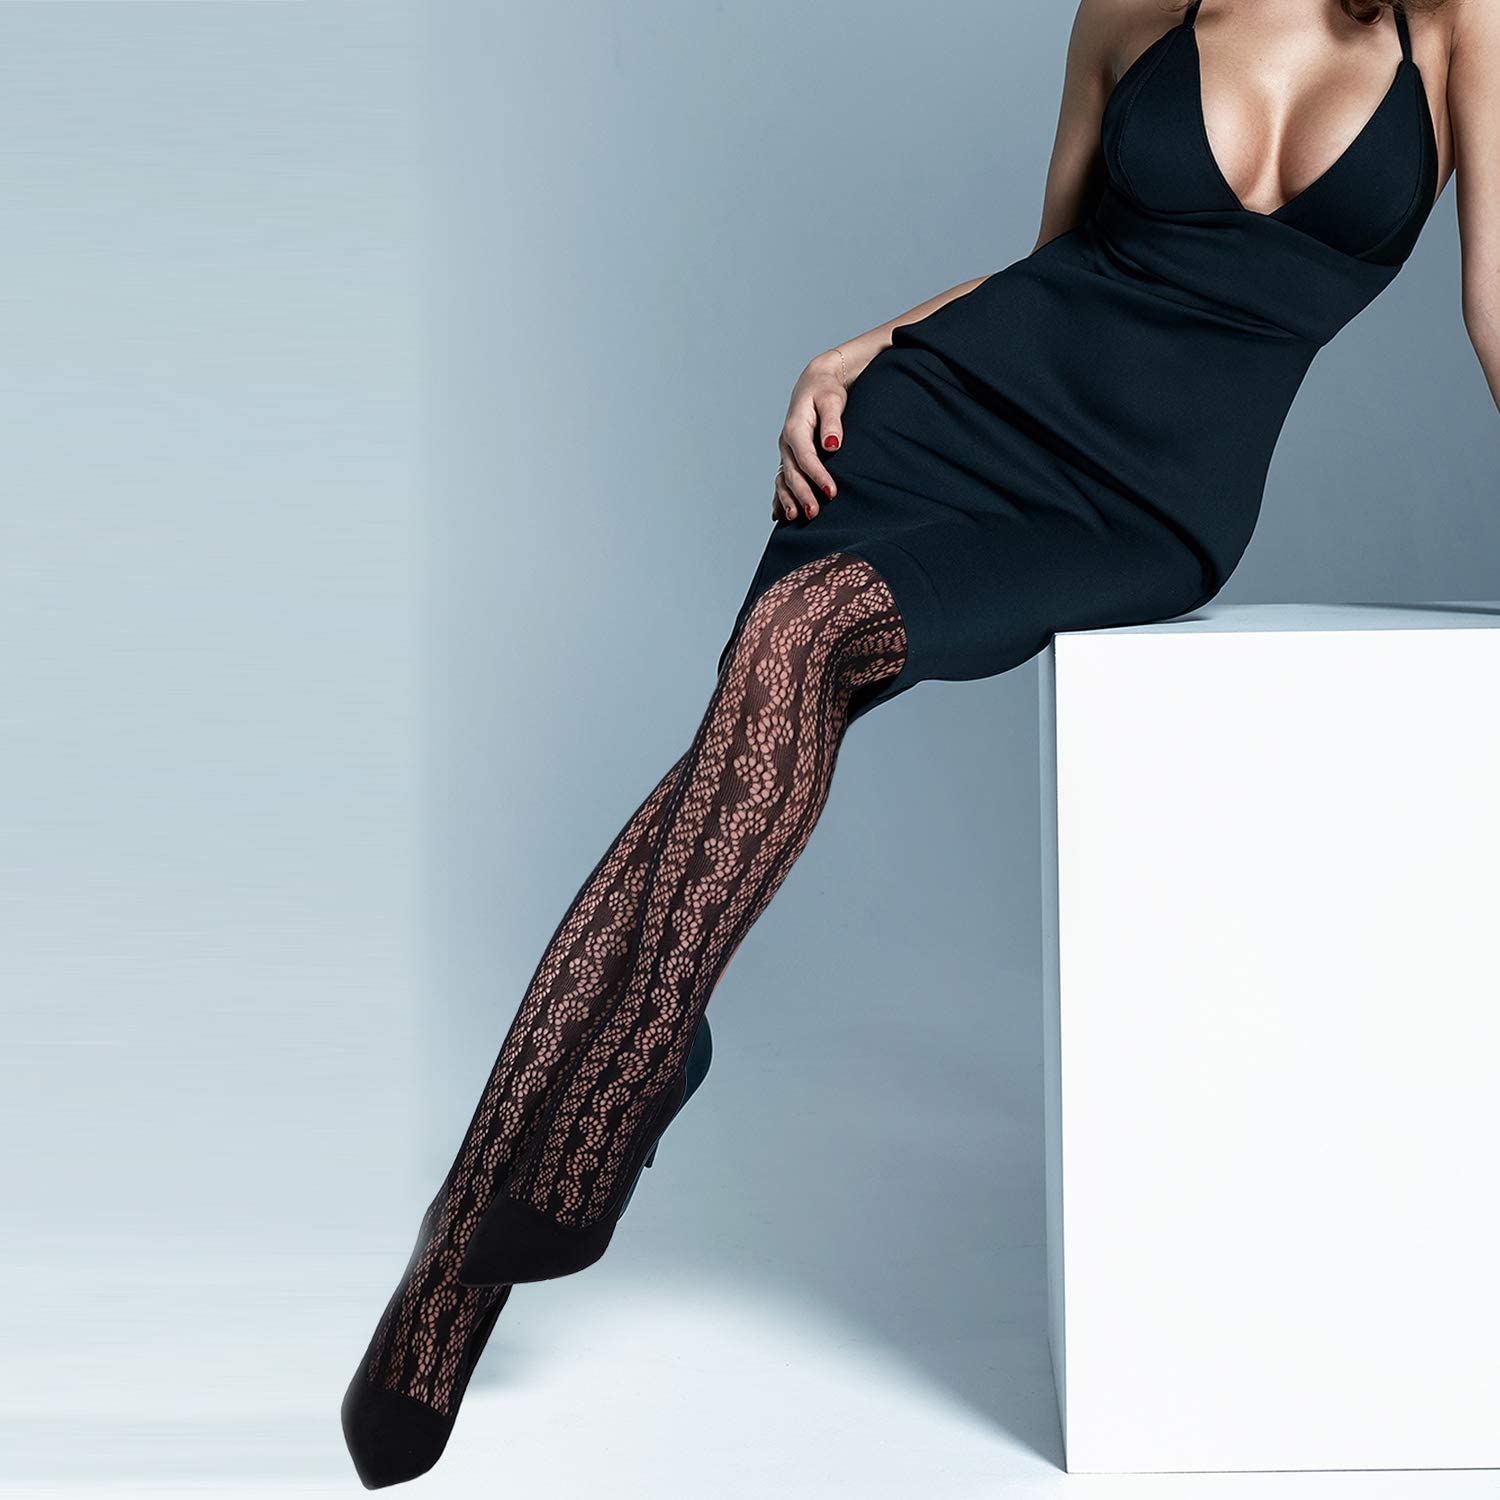 6 Pairs Women Suspender Pantyhose Stockings Valentine's Day Fishnet Tights Stretchy High Stockings for Dress up Favors at  Women's Clothing store